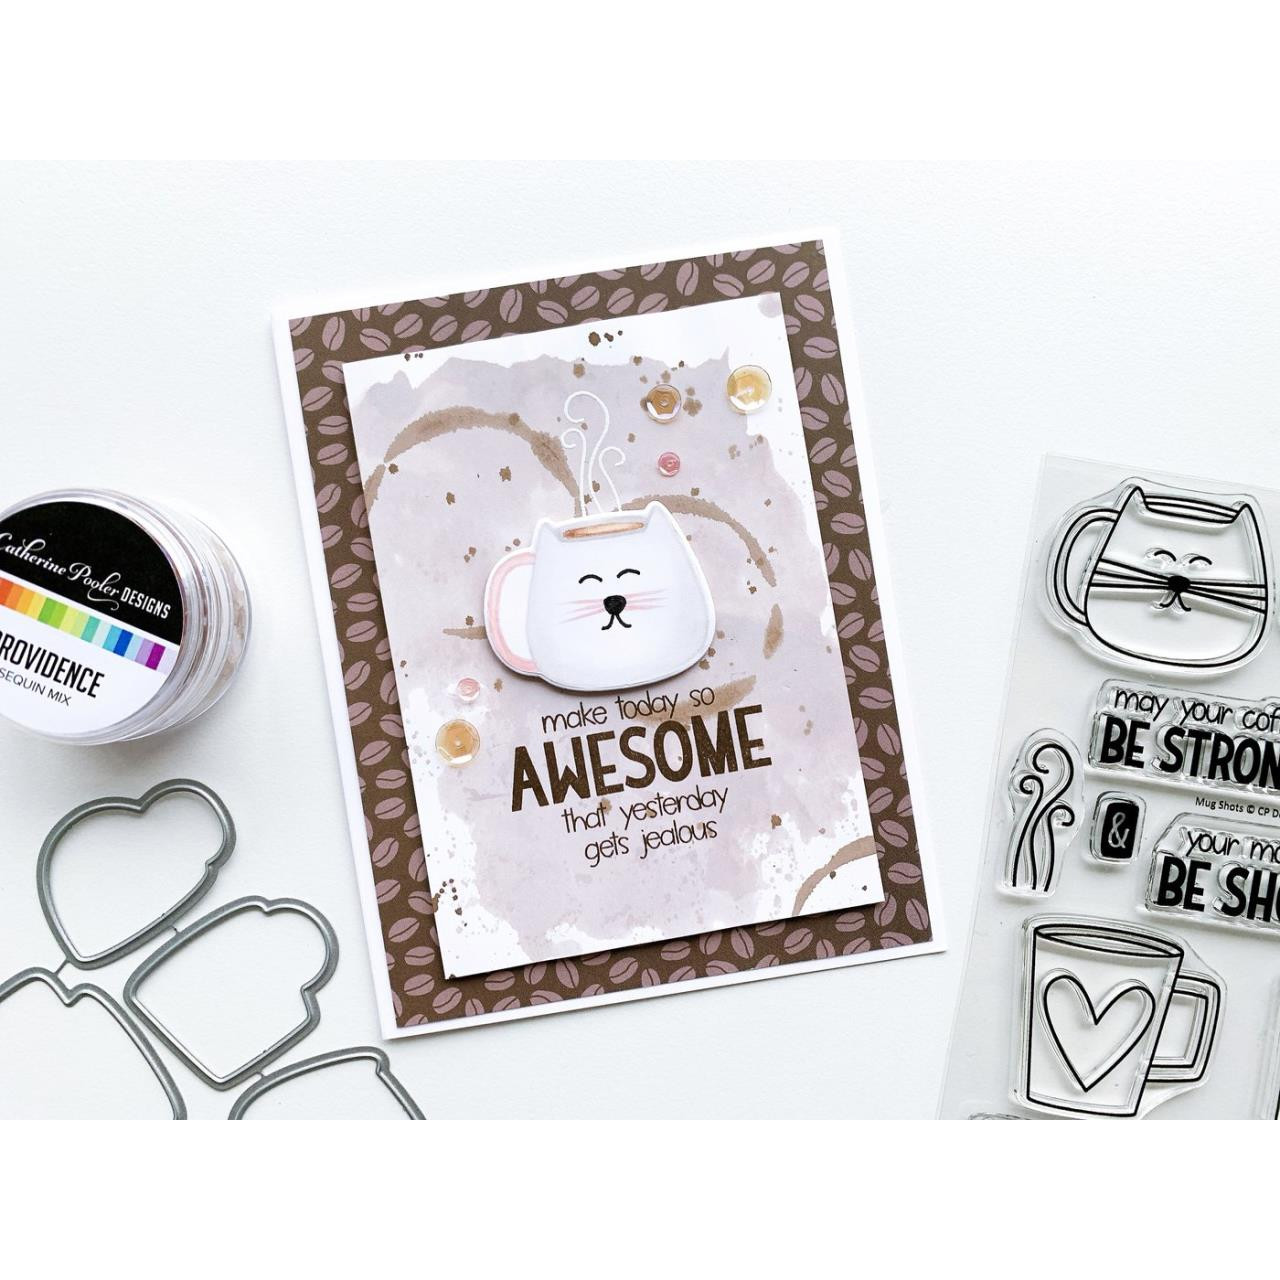 Mug Shots, Catherine Pooler Clear Stamps -